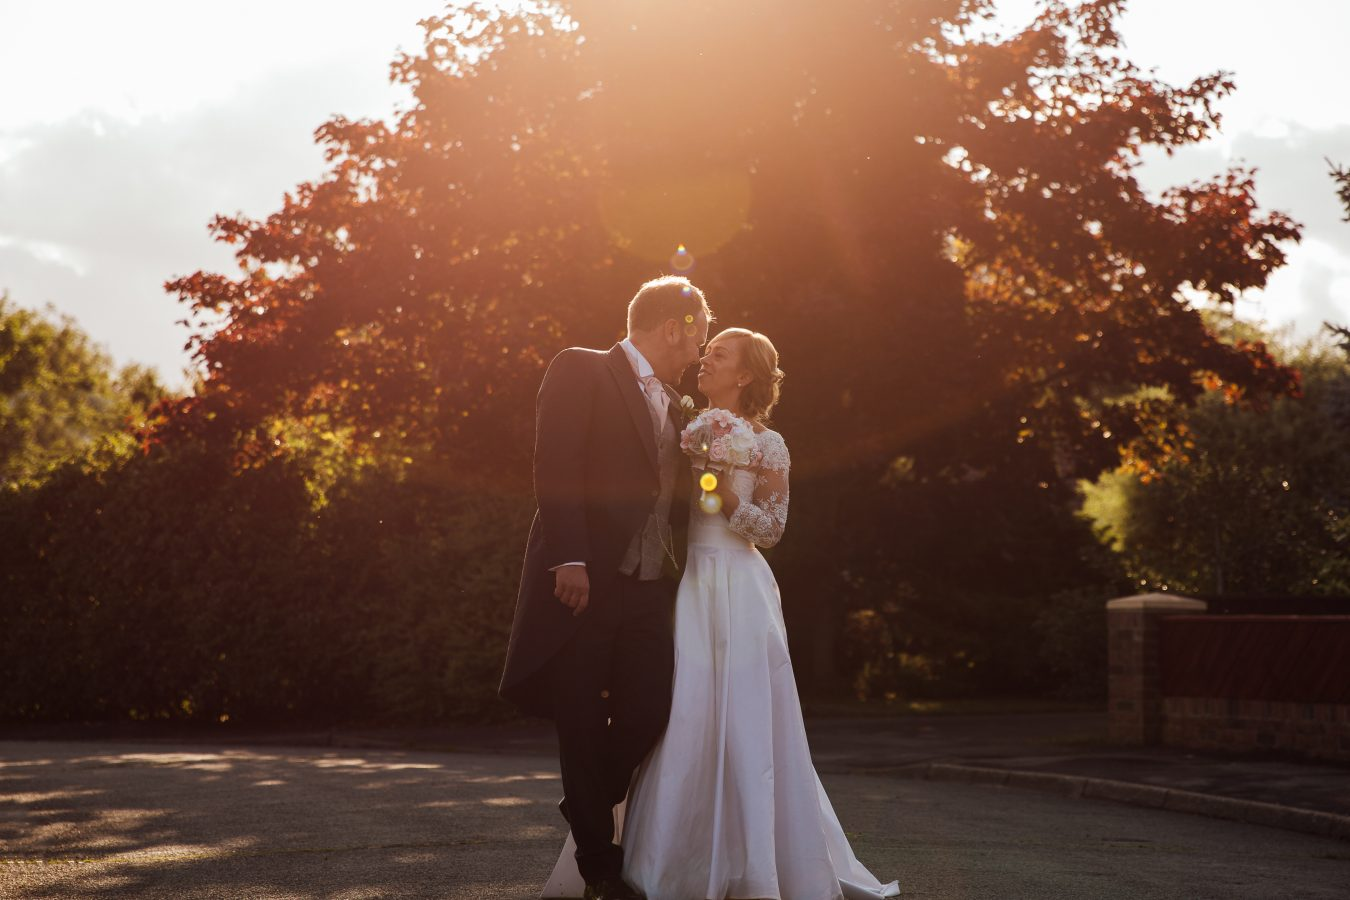 Andy-Lisa-North-Yorkshire-Wedding-Jules-Barron-Photographer-2018-789